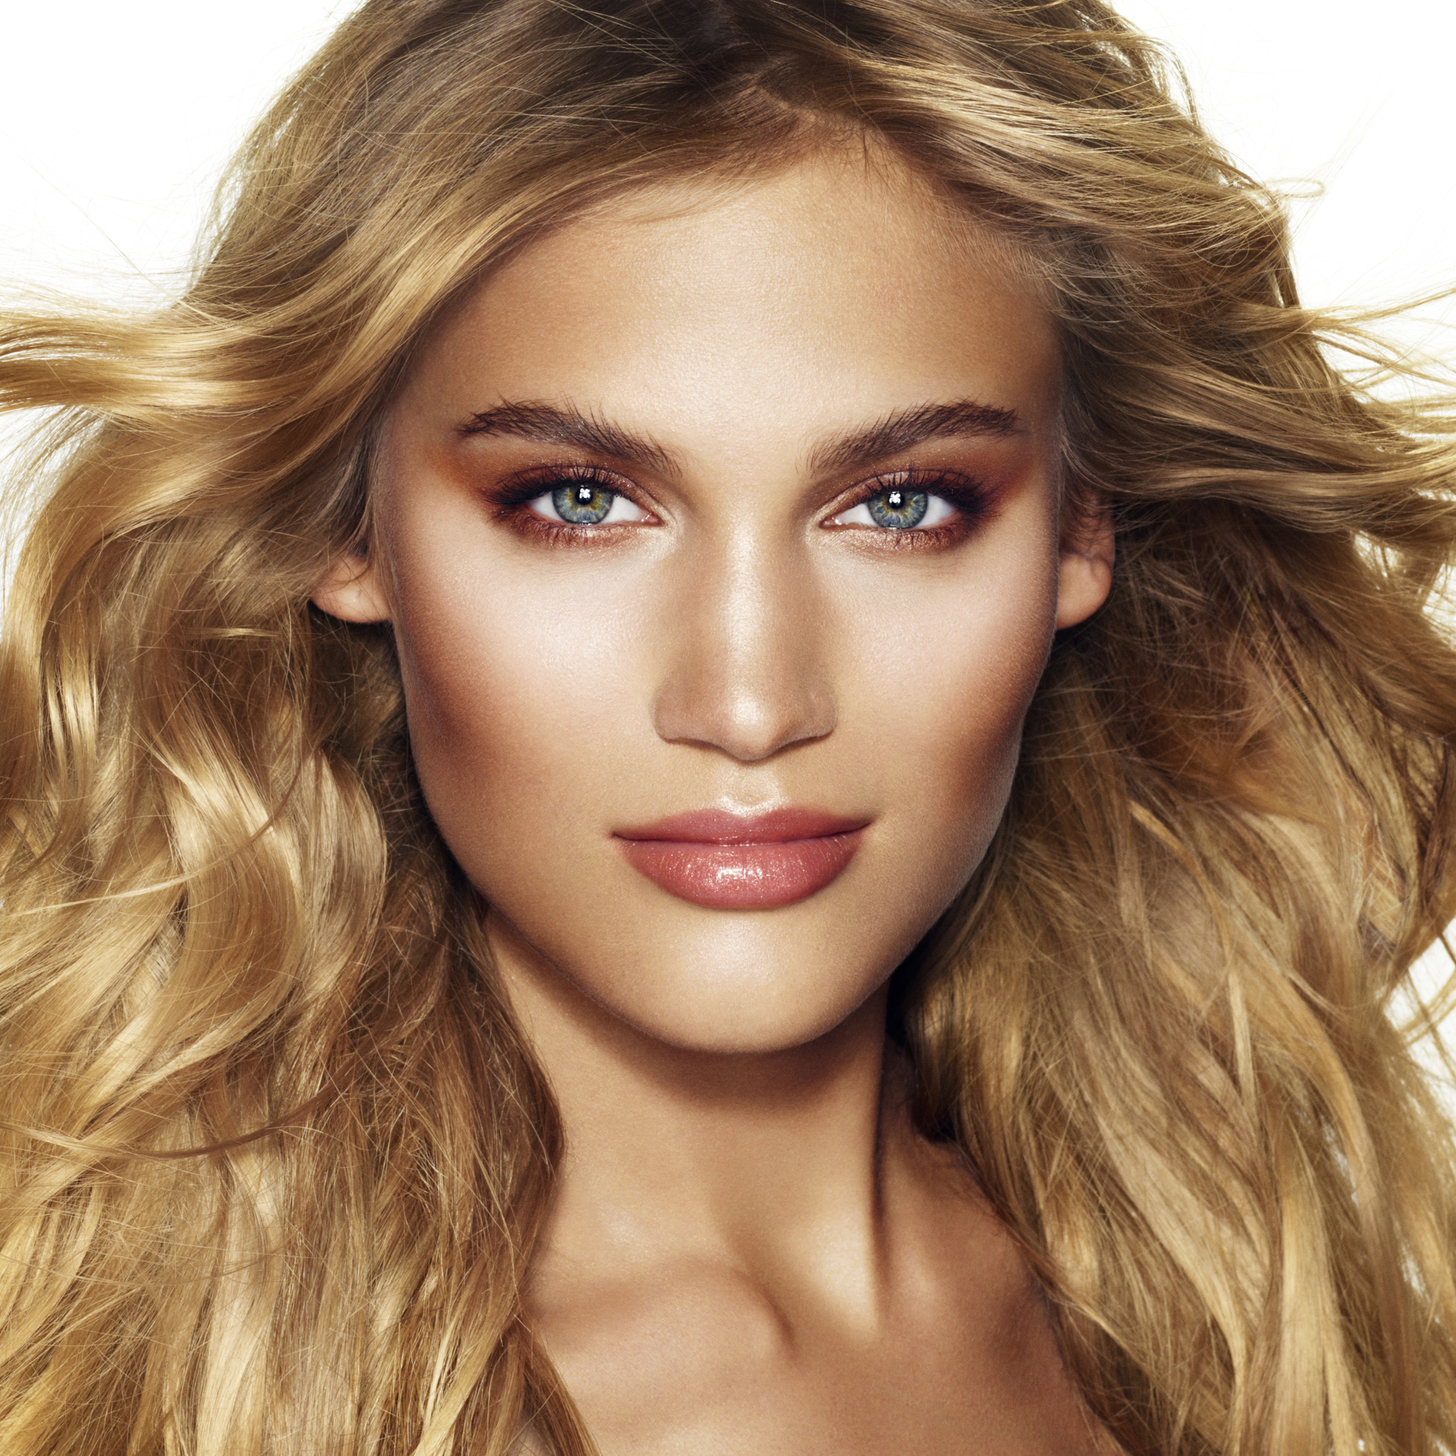 Charlotte-Tilbury-Supermodel-Makeup-Tips.jpg